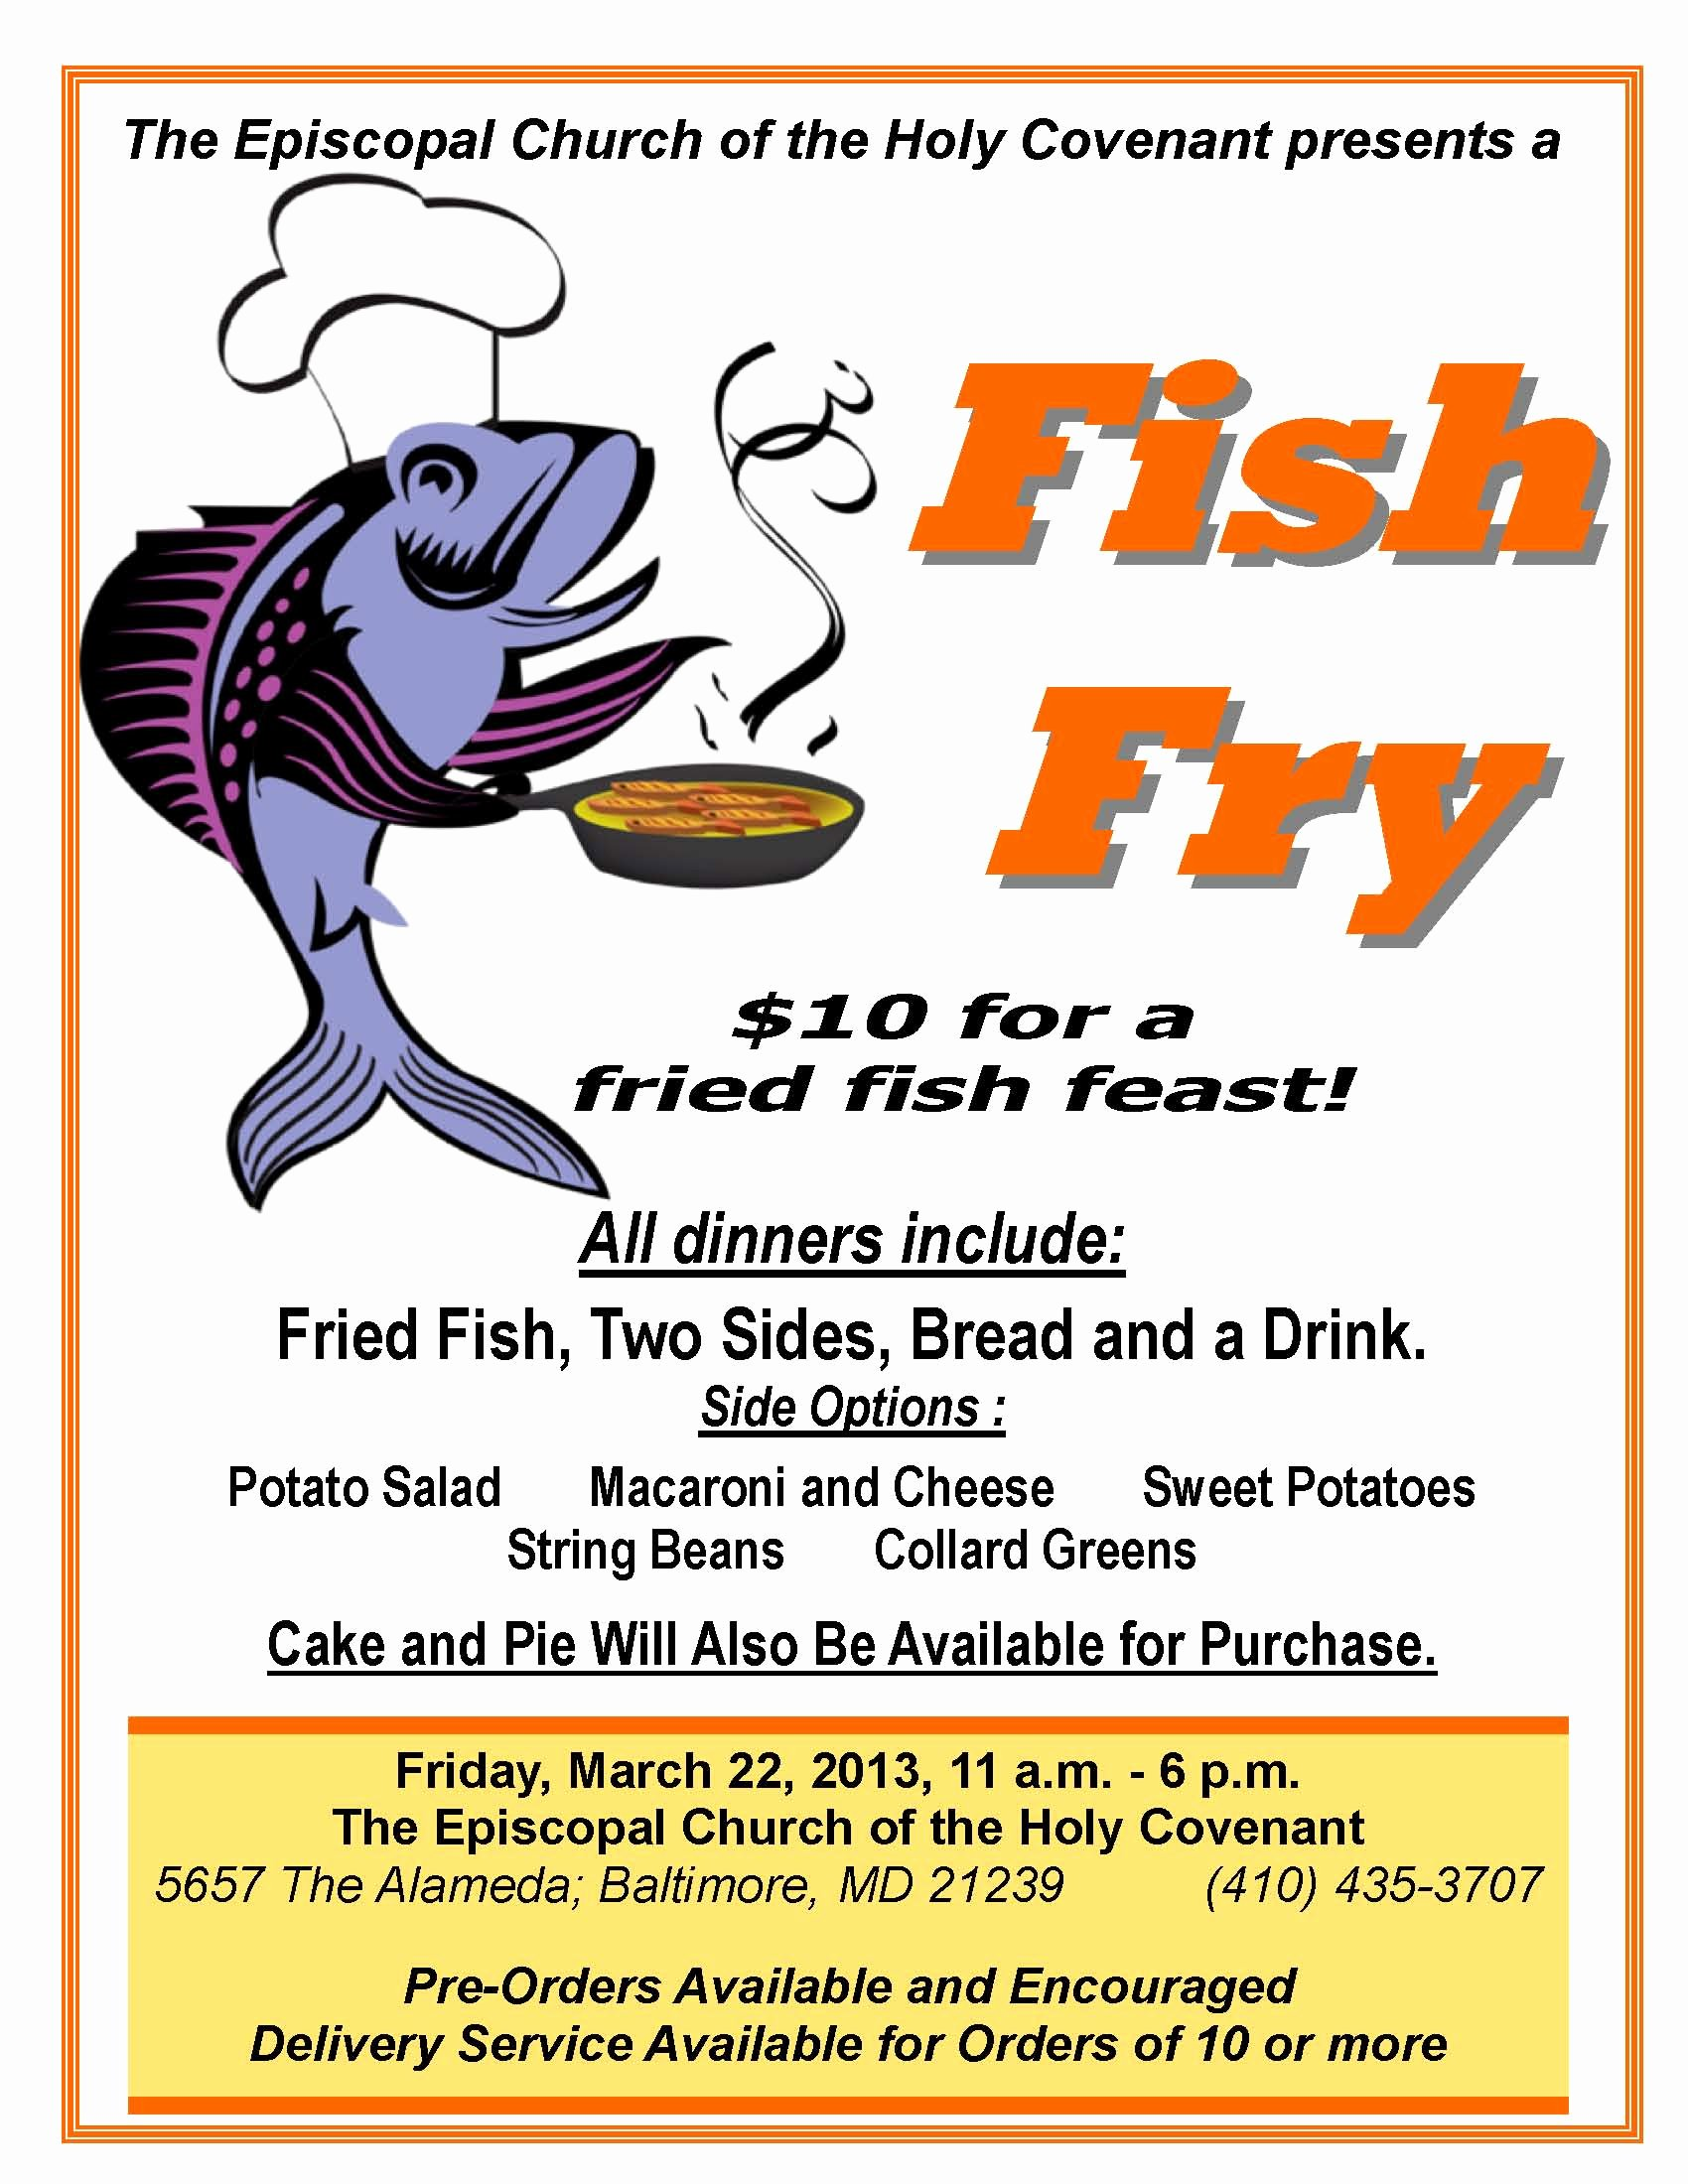 Fish Fry Flyer Examples Inspirational Index Of Wp Content 2013 02